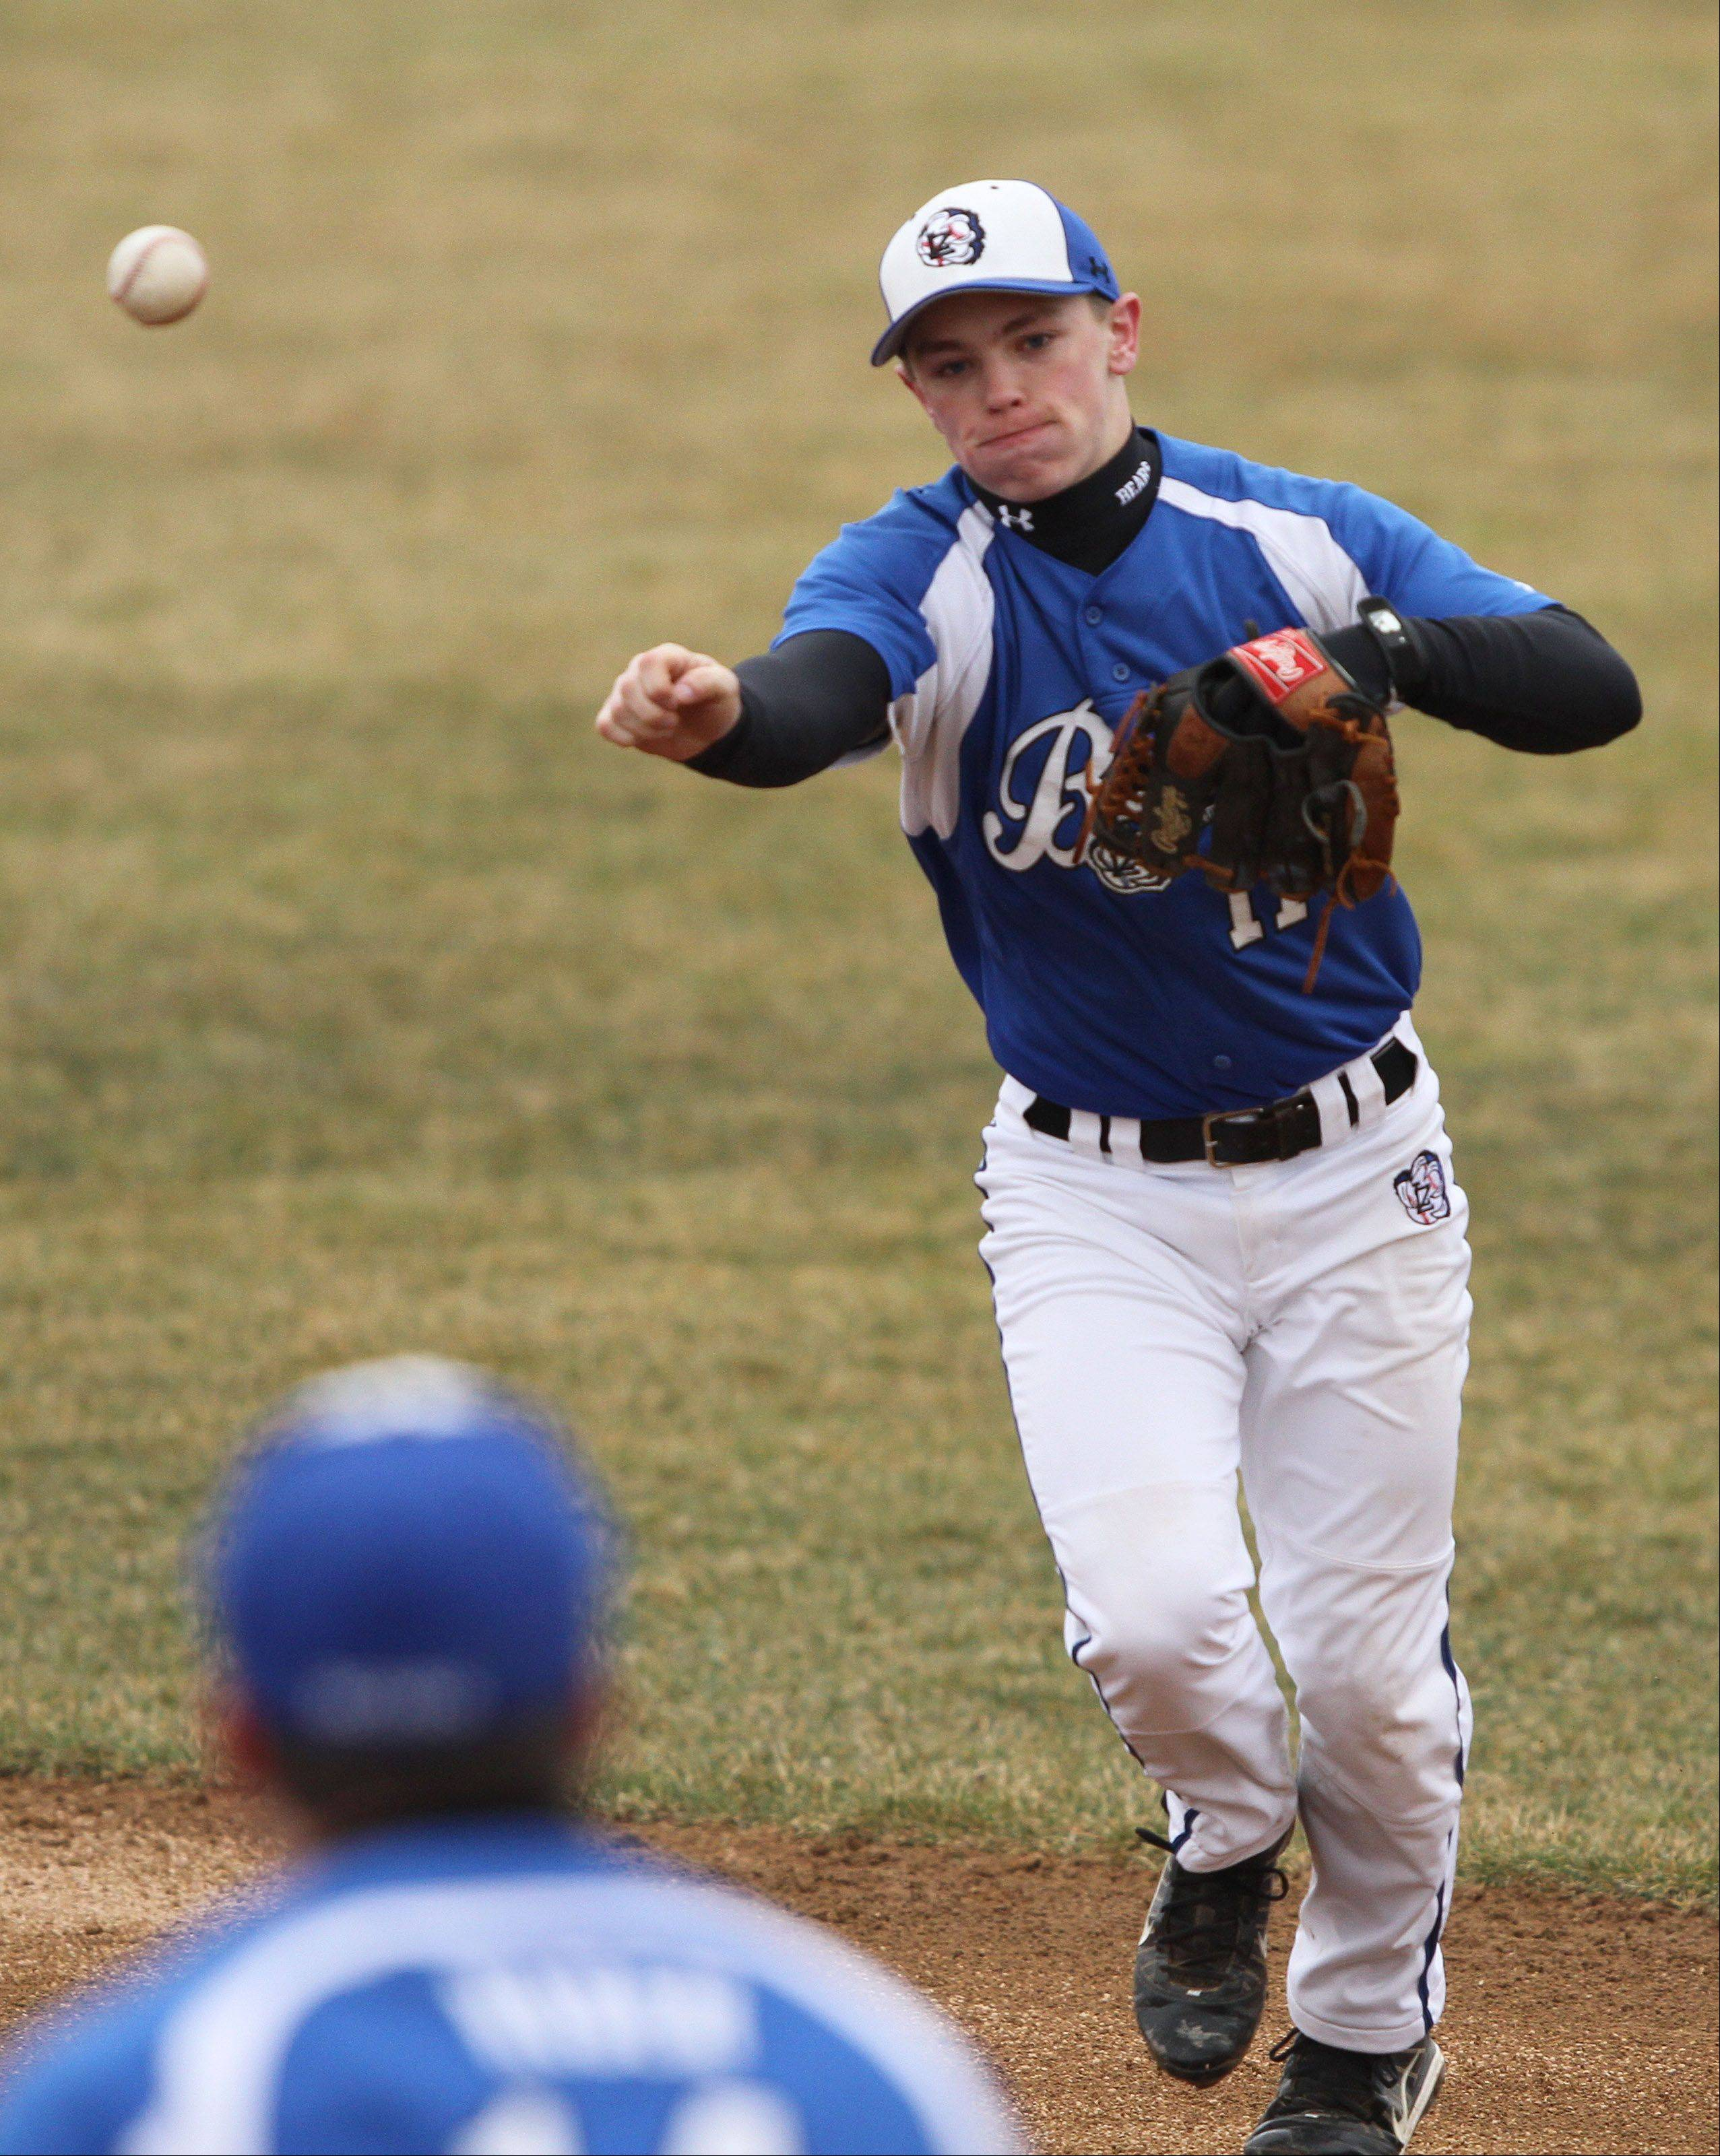 Lake Zurich's Danny Neises throws to first baseman Tanner Kiser on Tuesday at Mundelein High School.